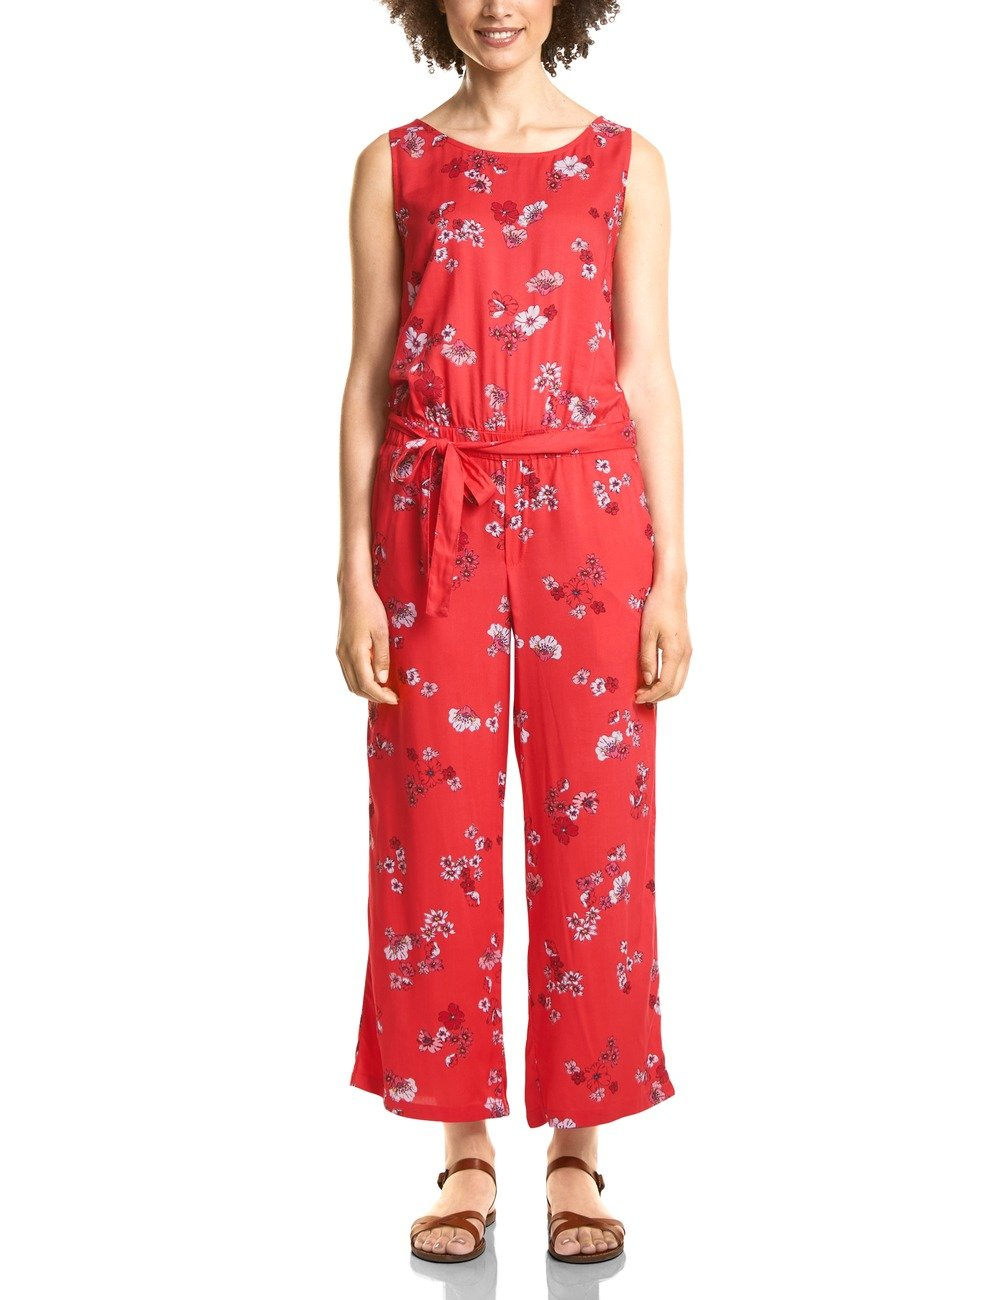 Street One 3134642taille Red A371478 CombinaisonMulticolorehibiscus Fabricant40Femme tdBQsrCxoh